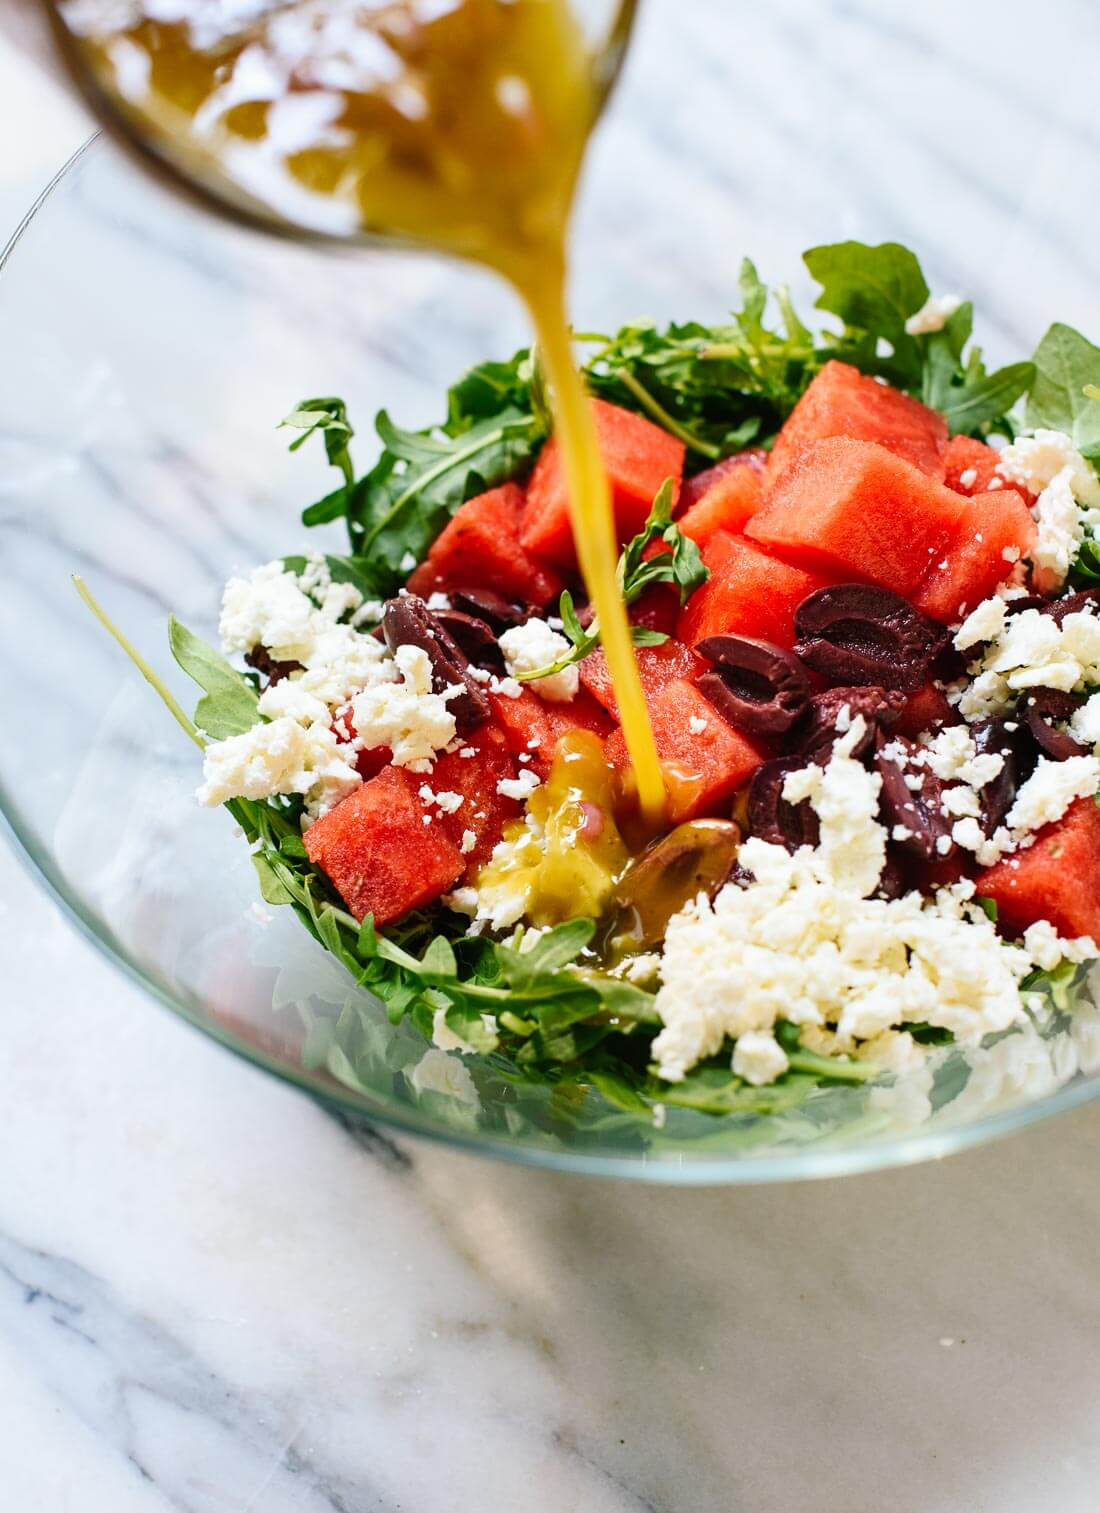 Delicious watermelon salad recipe featuring fresh arugula, feta, and olives with sherry vinaigrette - cookieandkate.com